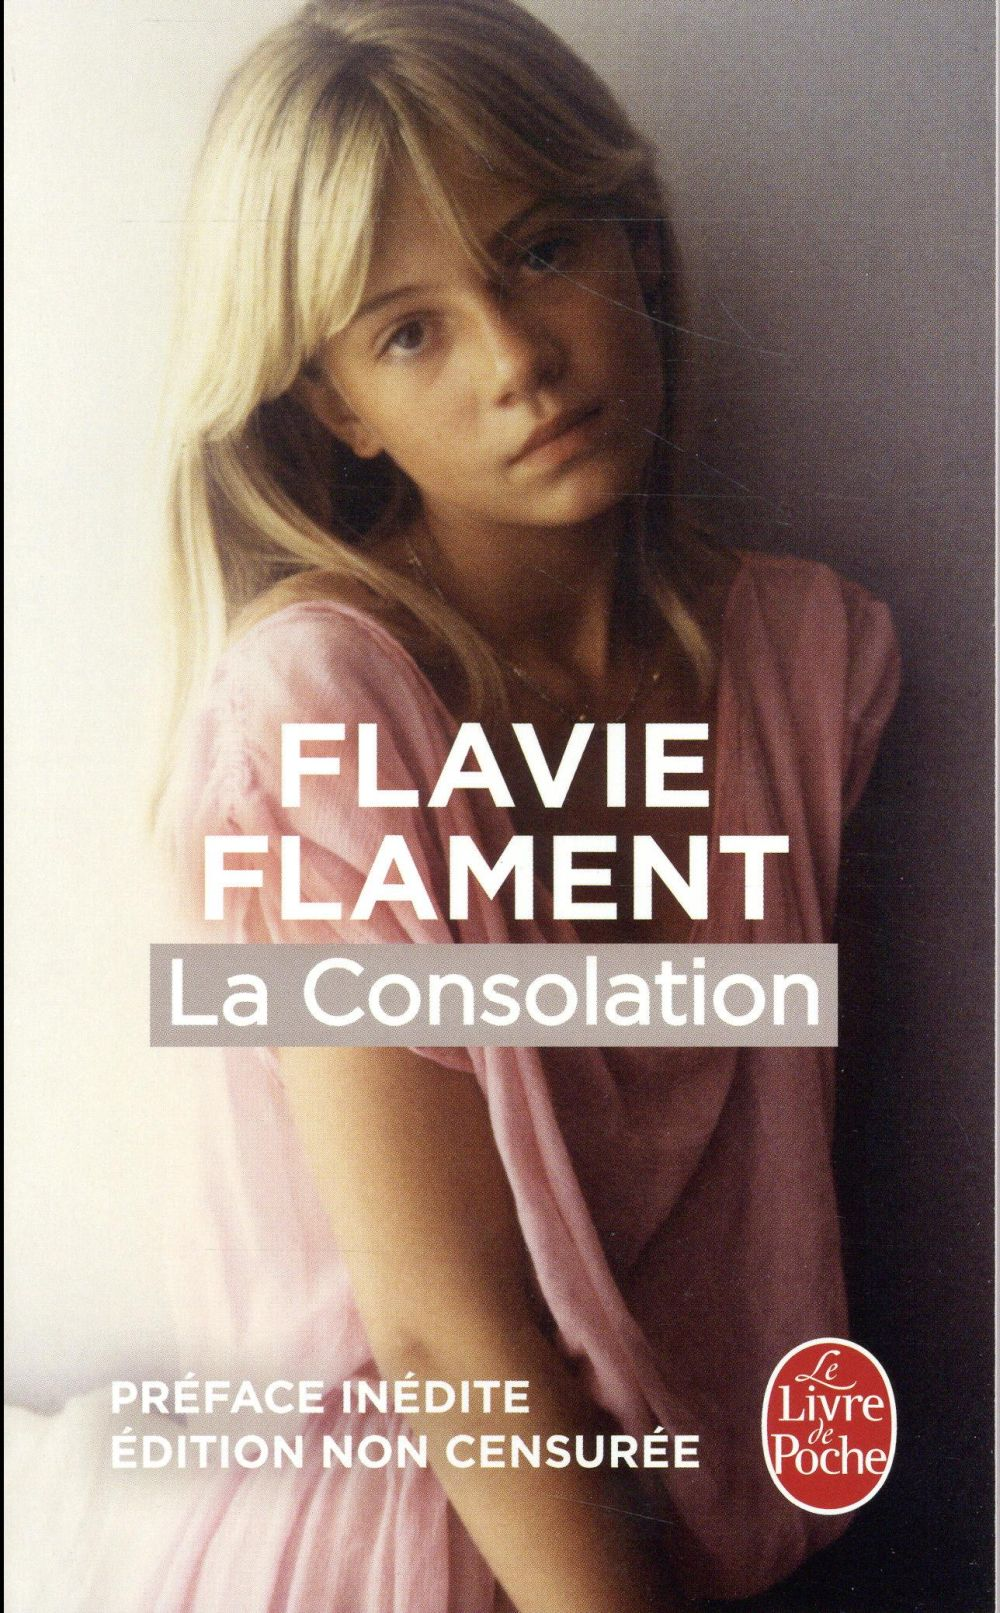 LA CONSOLATION Flament Flavie Le Livre de poche